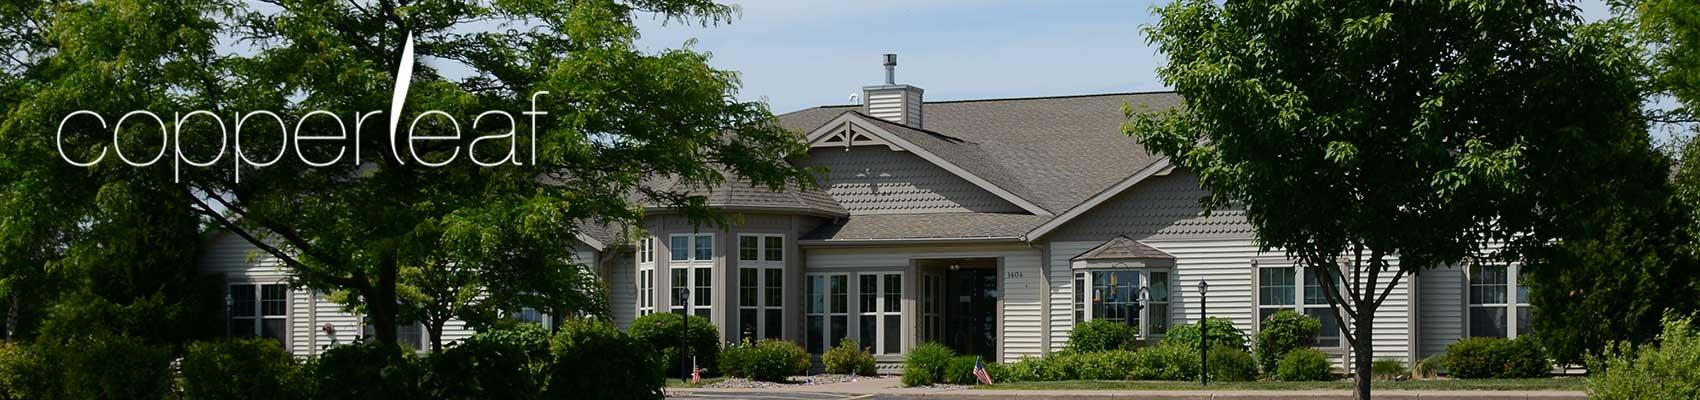 assisted living facilities in Hopokoekau Beach Wisconsin Fond du Lac County